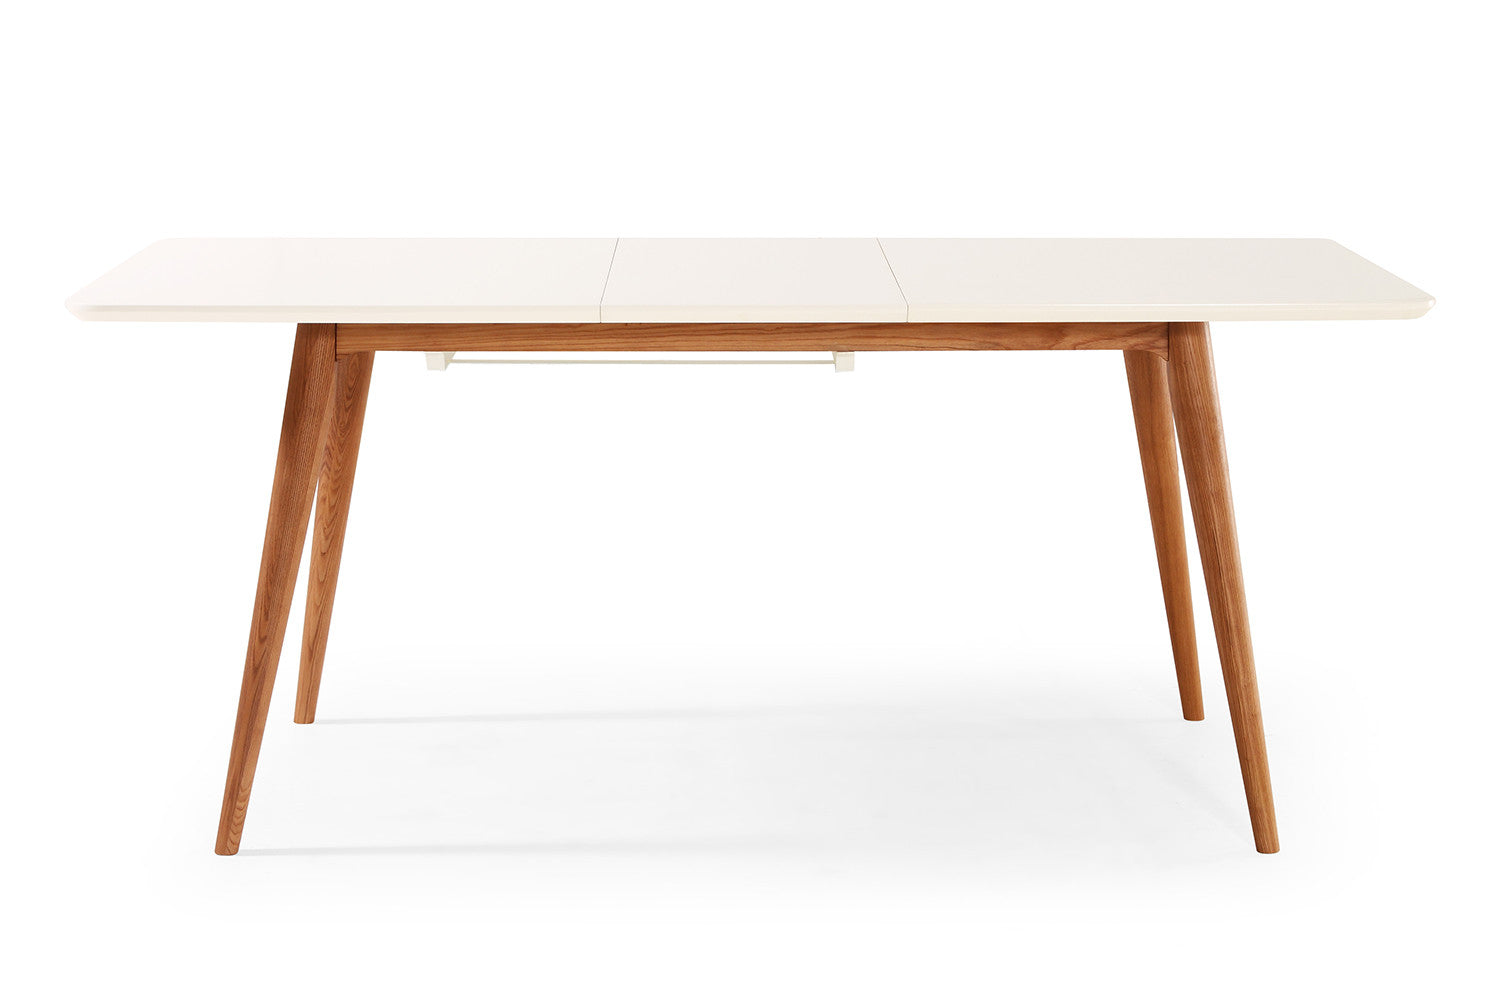 Table de salle manger extensible scandinave wyna dewarens for Table salle a manger ronde scandinave